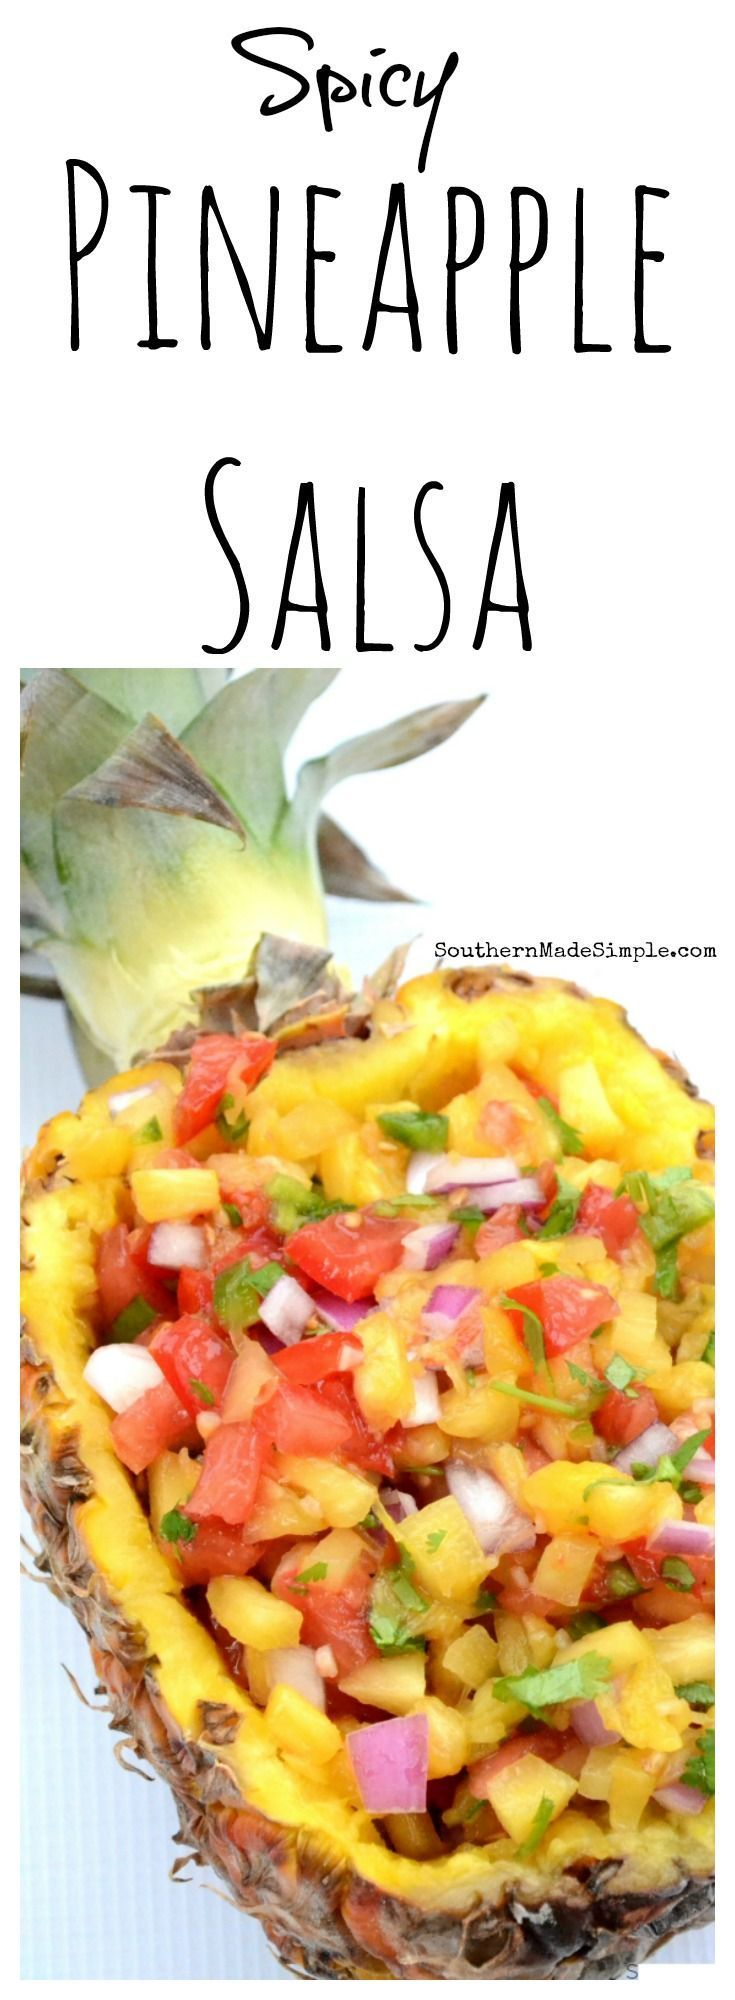 This simple spicy pineapple salsa is fresh, easy and SO delicious! Pair it with a plate full of spicy smoked sausage nachos and you'll be dining in paradise!